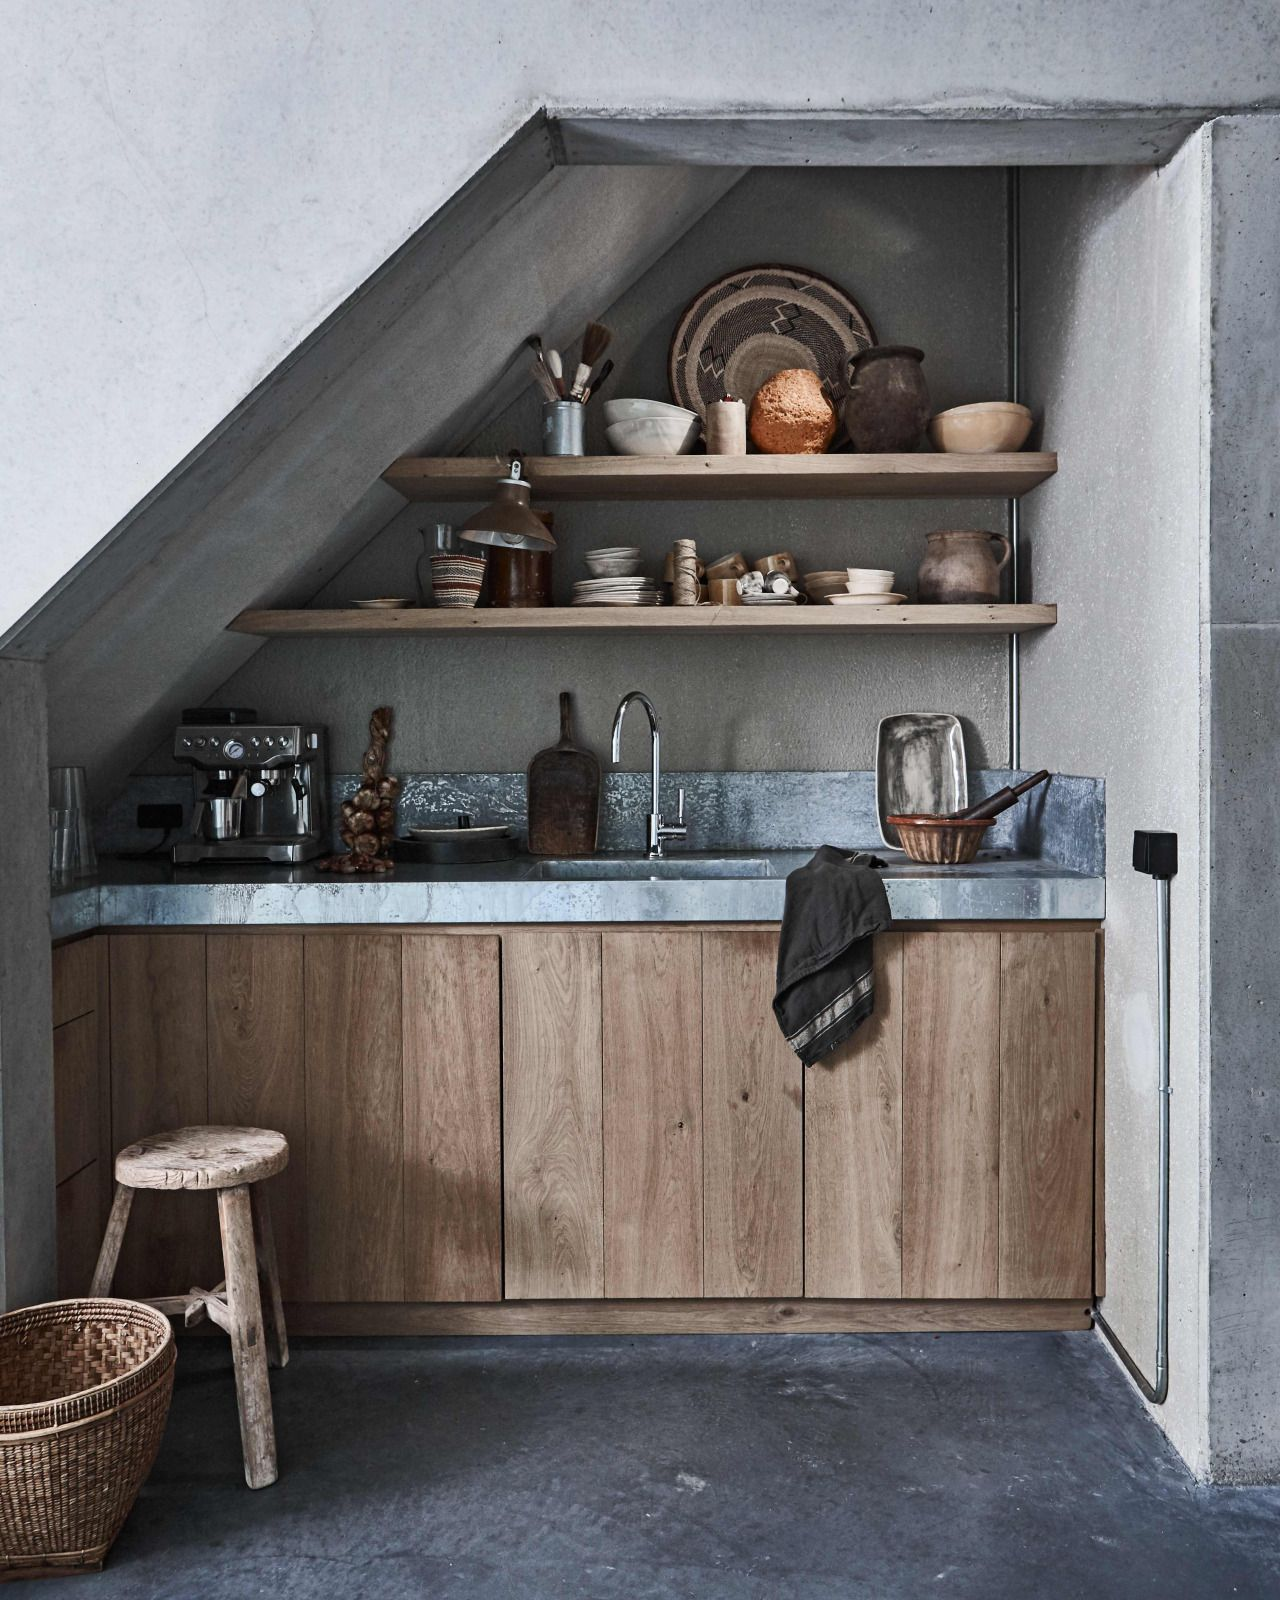 Small rustic kitchen with slanted ceiling | Montagna | Pinterest ...